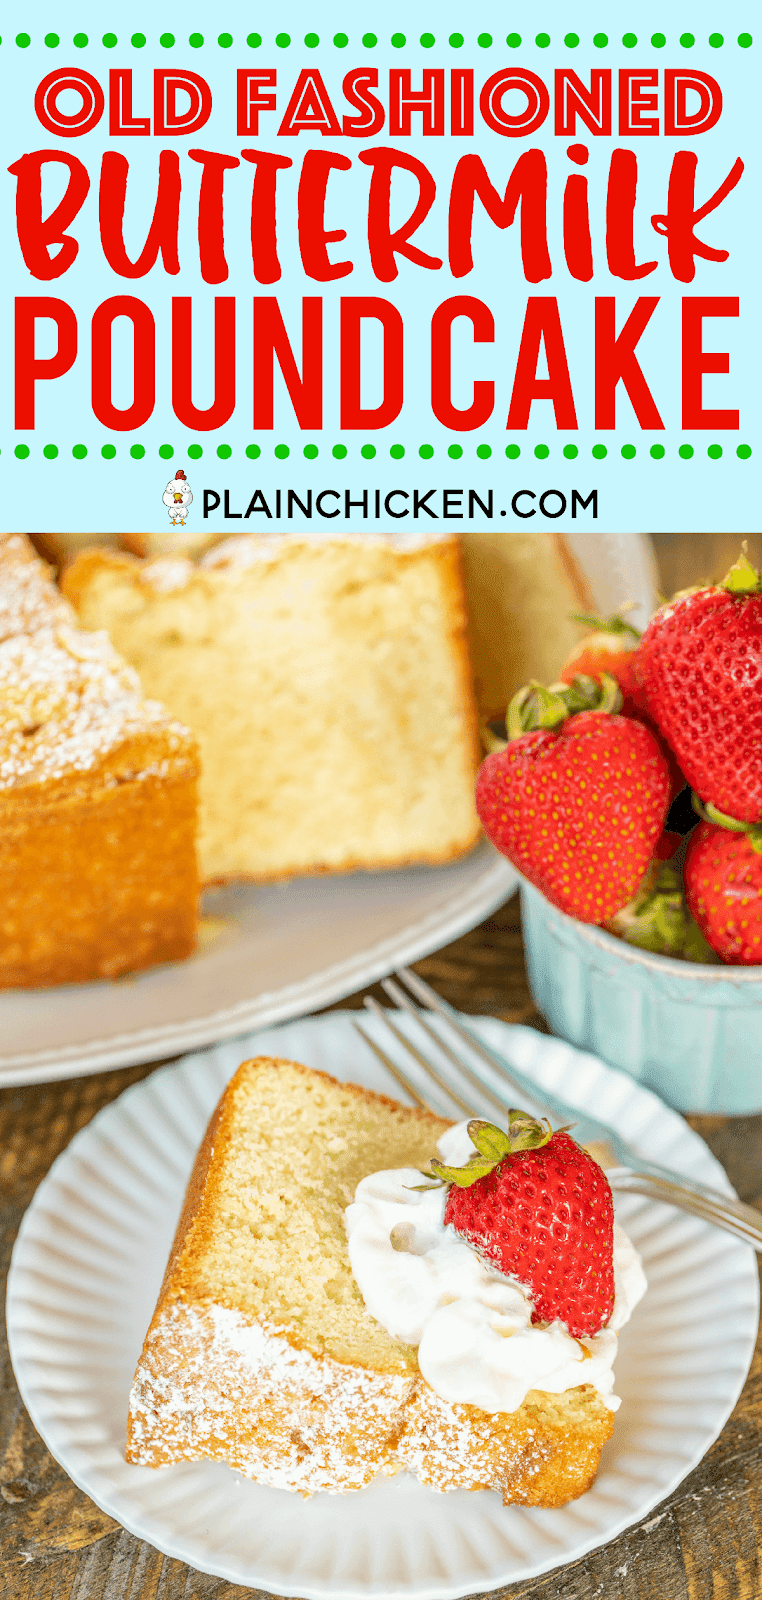 Old Fashioned Buttermilk Pound Cake - seriously the BEST pound cake we've ever made! SO delicious!! SO light and fluffy! Shortening, sugar, buttermilk, egg yolks, baking soda, flour, salt, vanilla and stiff egg whites. Fluffy egg whites make all the difference in this batter! Can make ahead of time and store in an air-tight container. Freeze any leftovers for a quick dessert later. You MUST make this cake ASAP!! #cake #dessert #poundcake